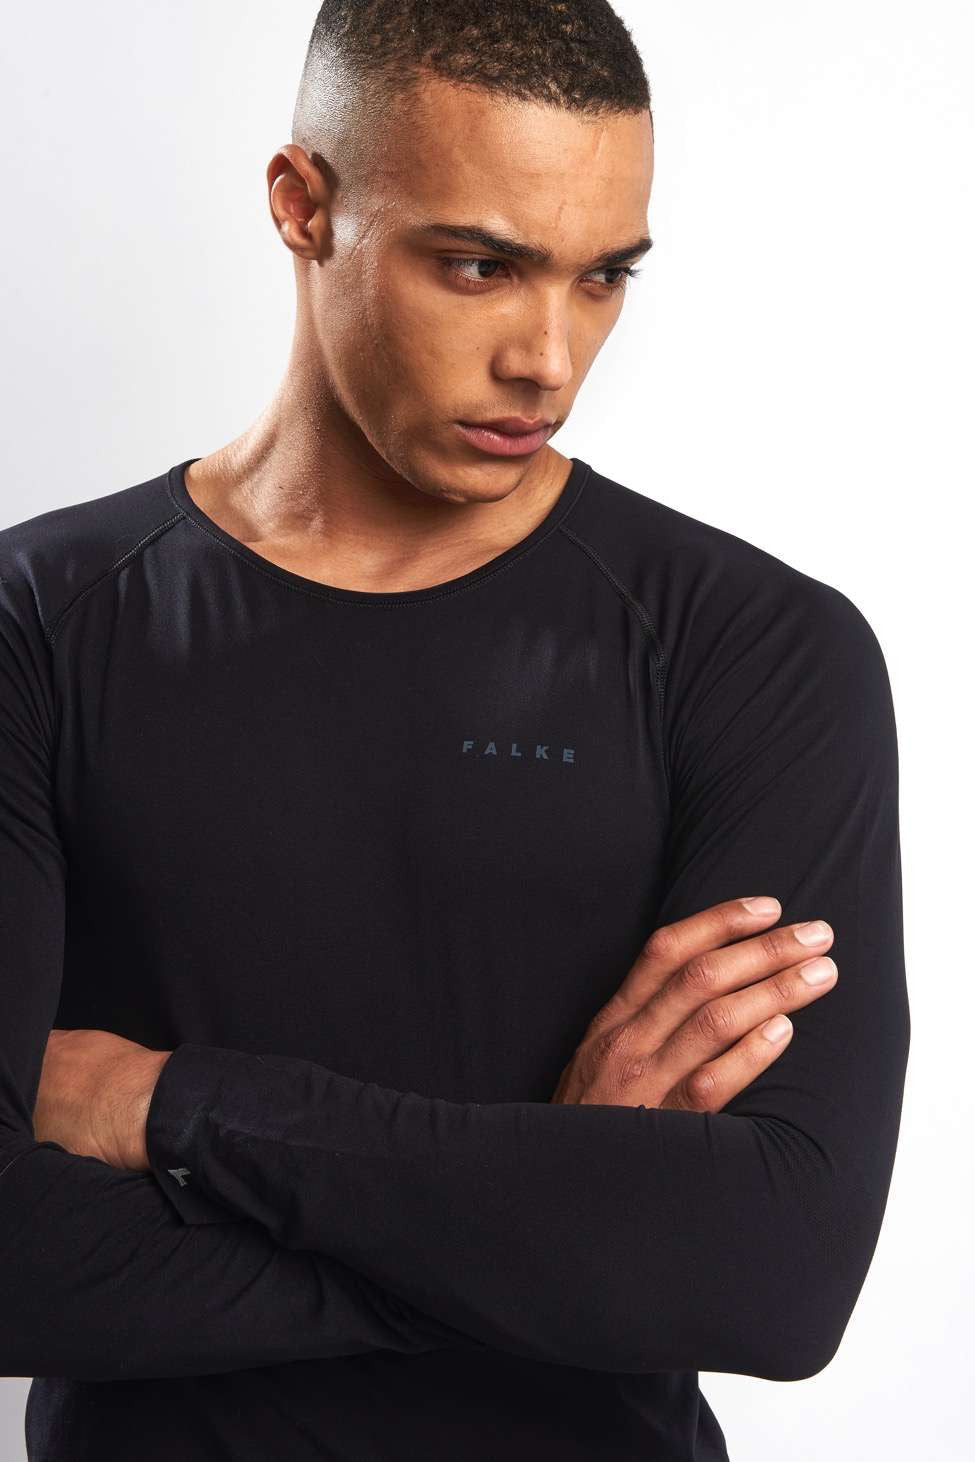 Falke Long-sleeved Comfort Shirt - Black image 3 - The Sports Edit